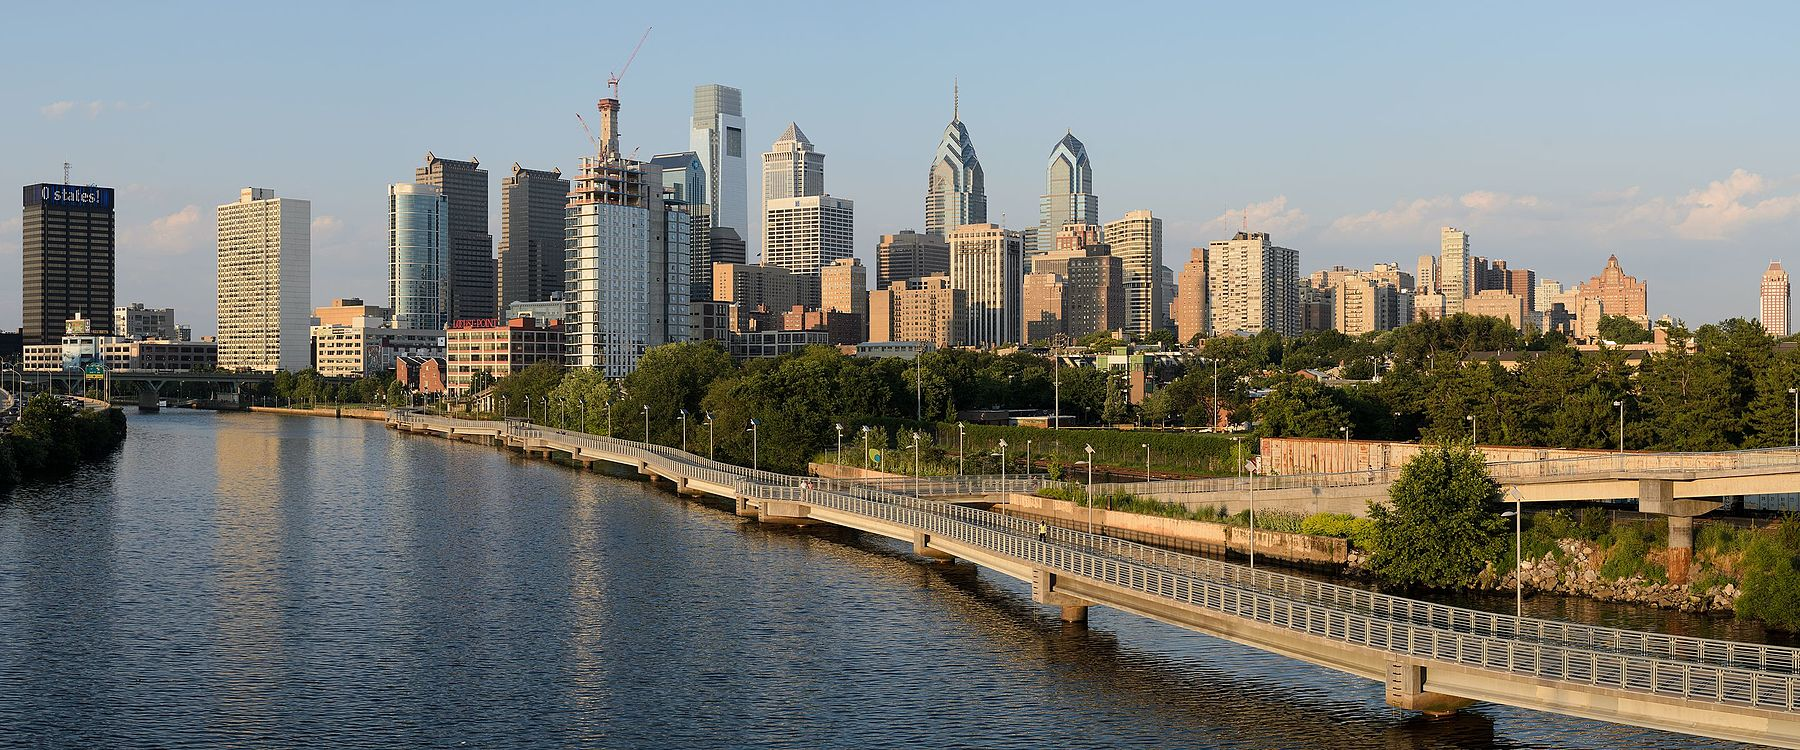 Philadelphia Wikipedia - Us zip code or city and country